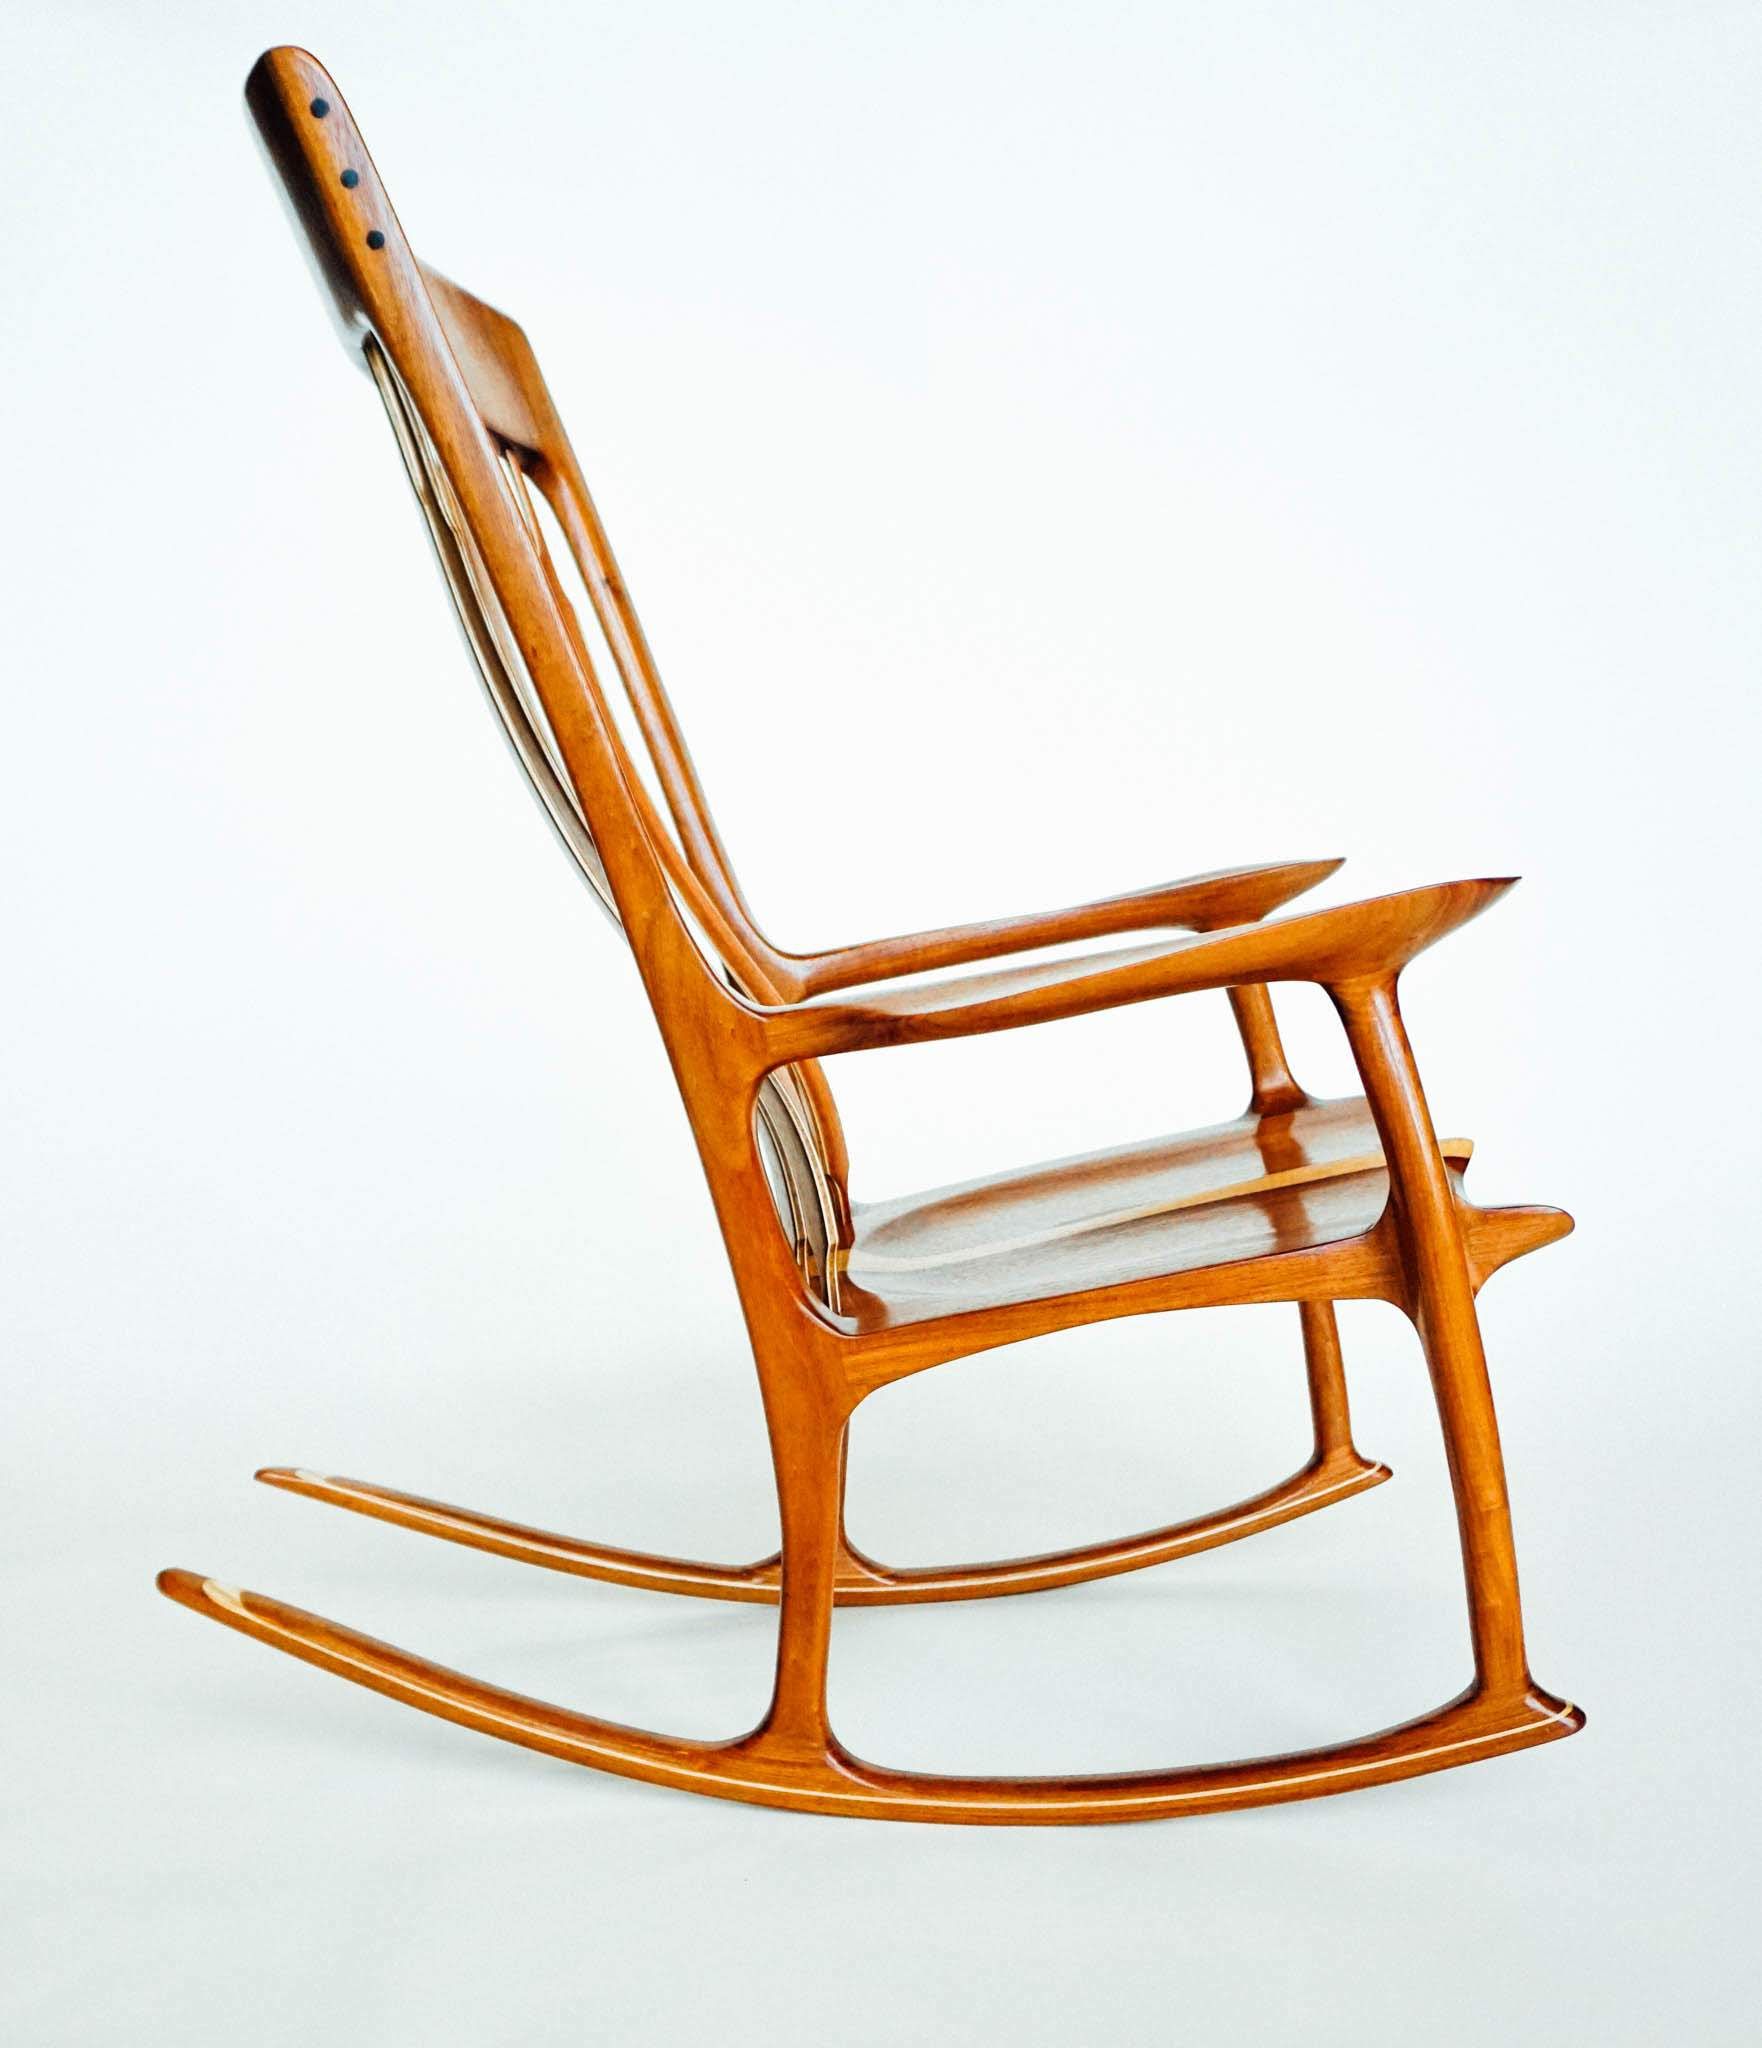 Profile of macawood chair. Note the ebony plugs for the headrest and the shallow curve in the underside of the seat.